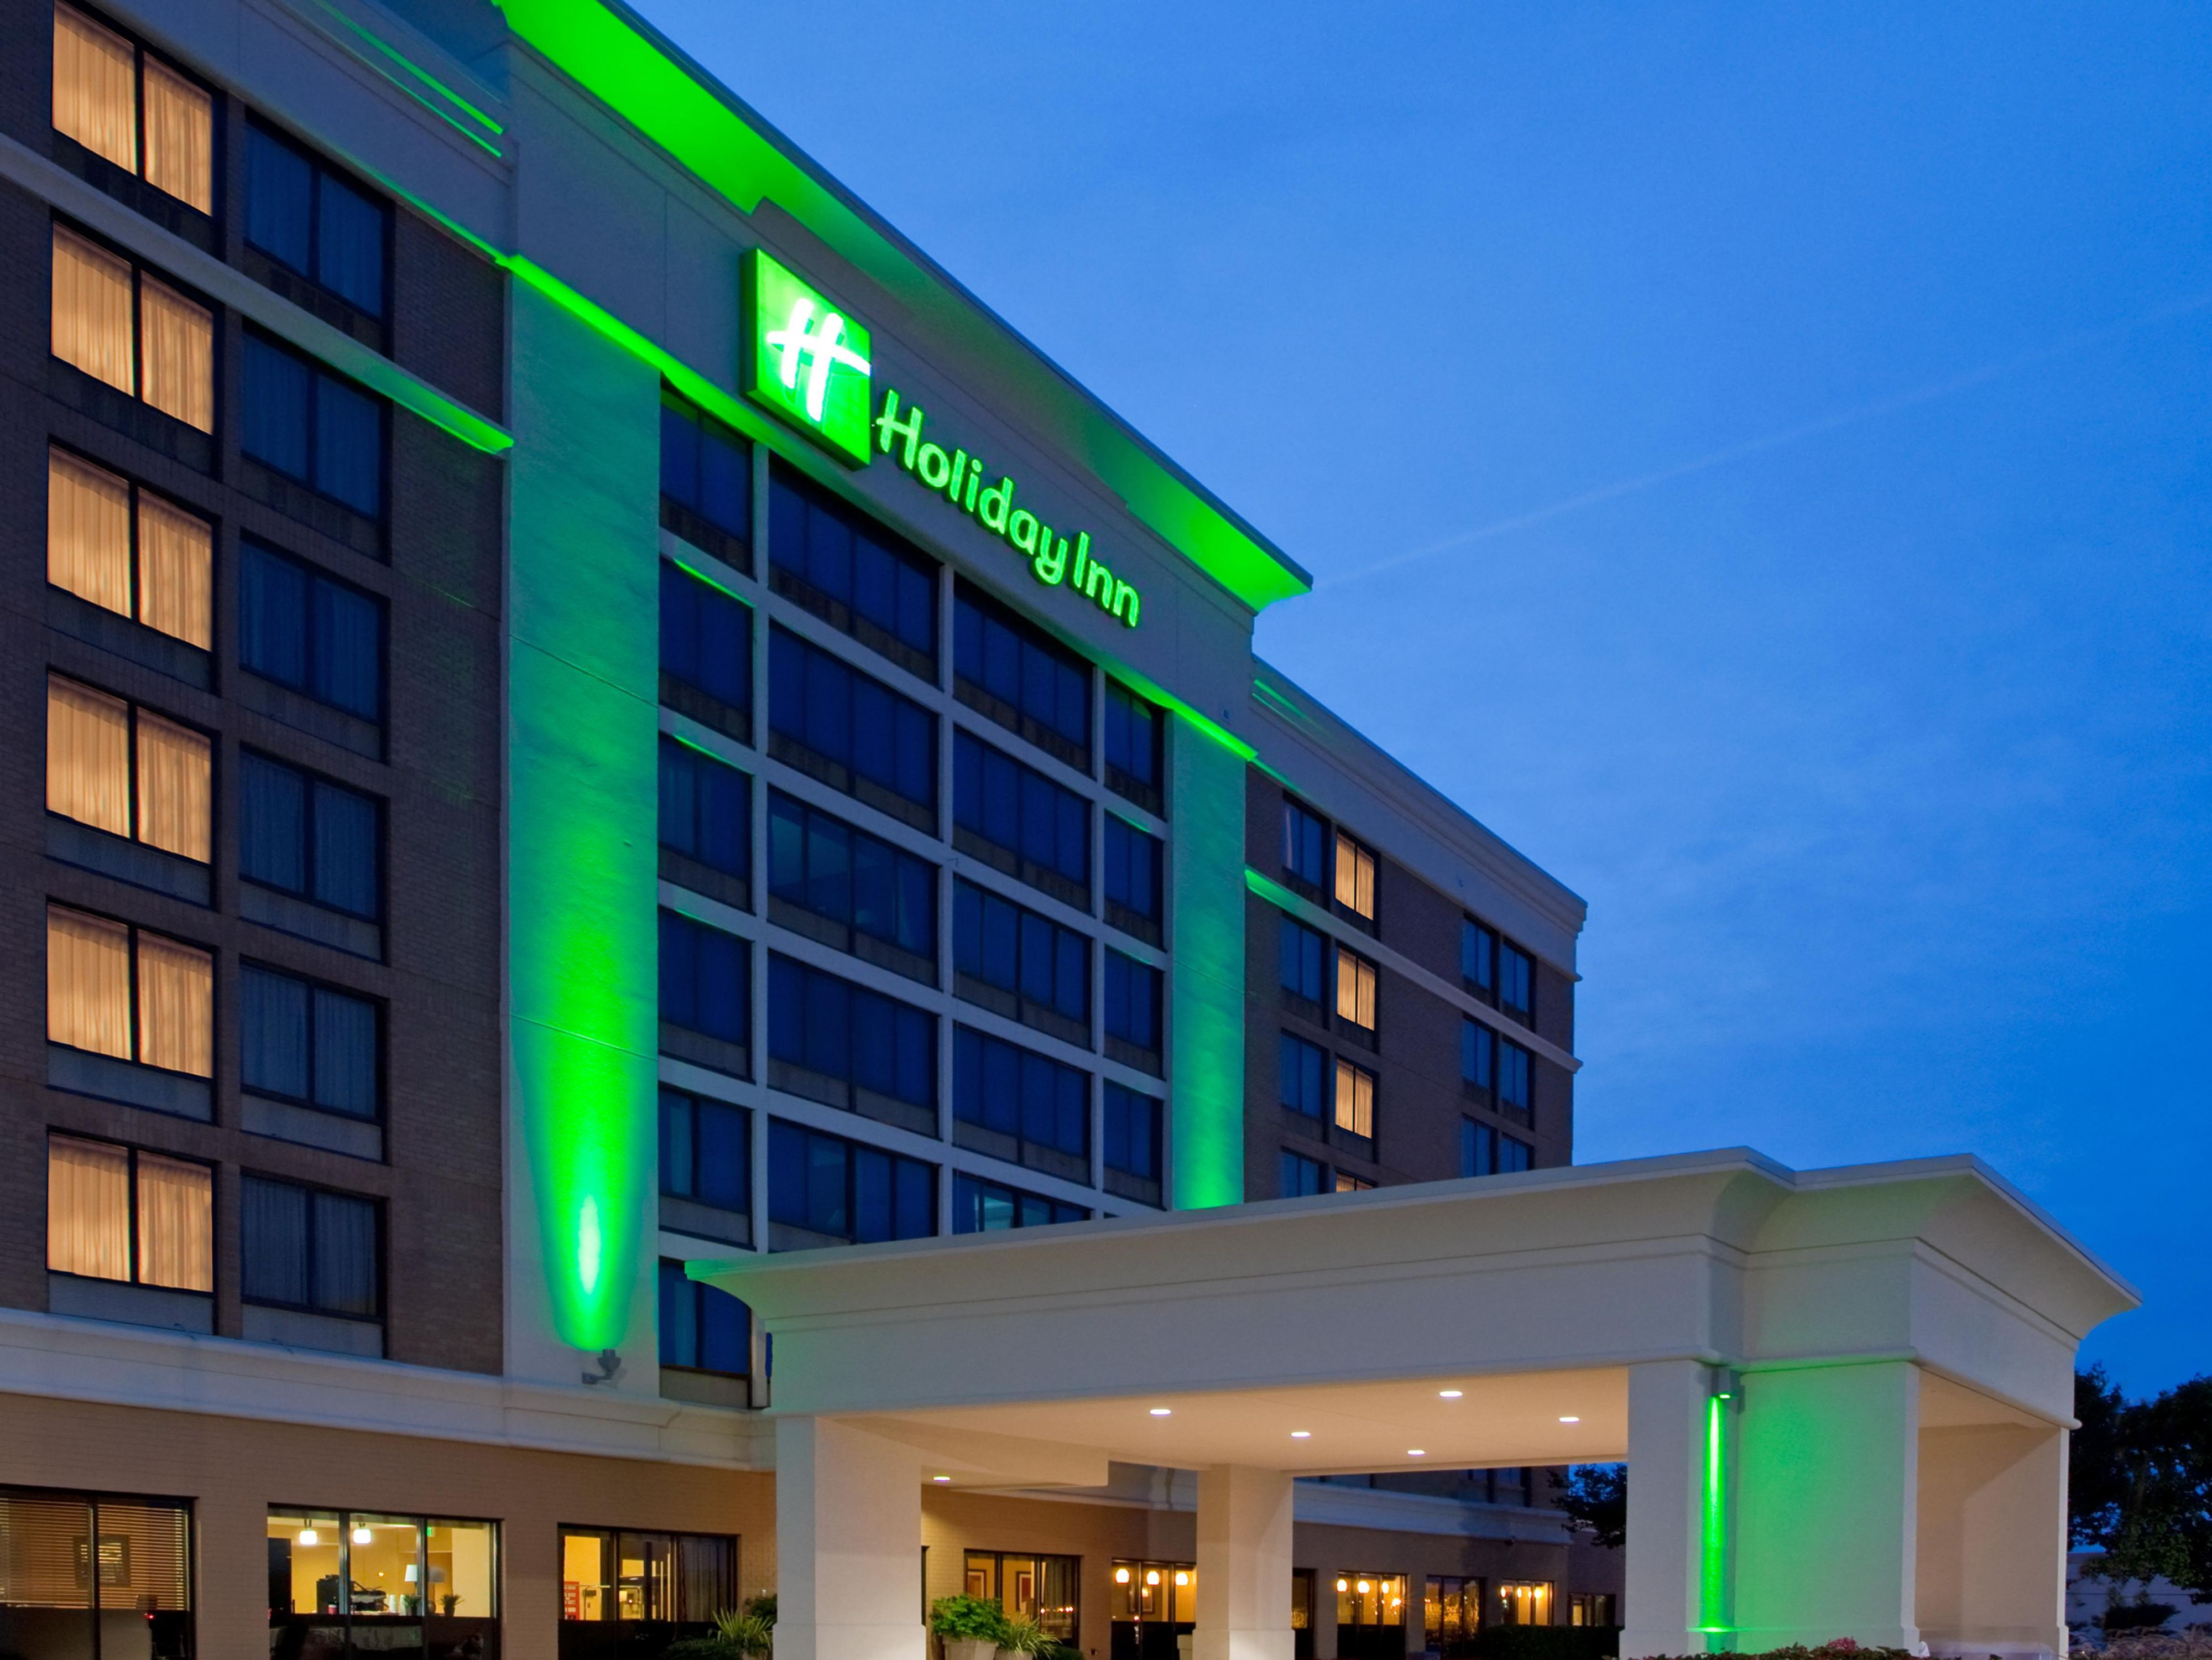 Holiday Inn Timonium Hotel Exterior